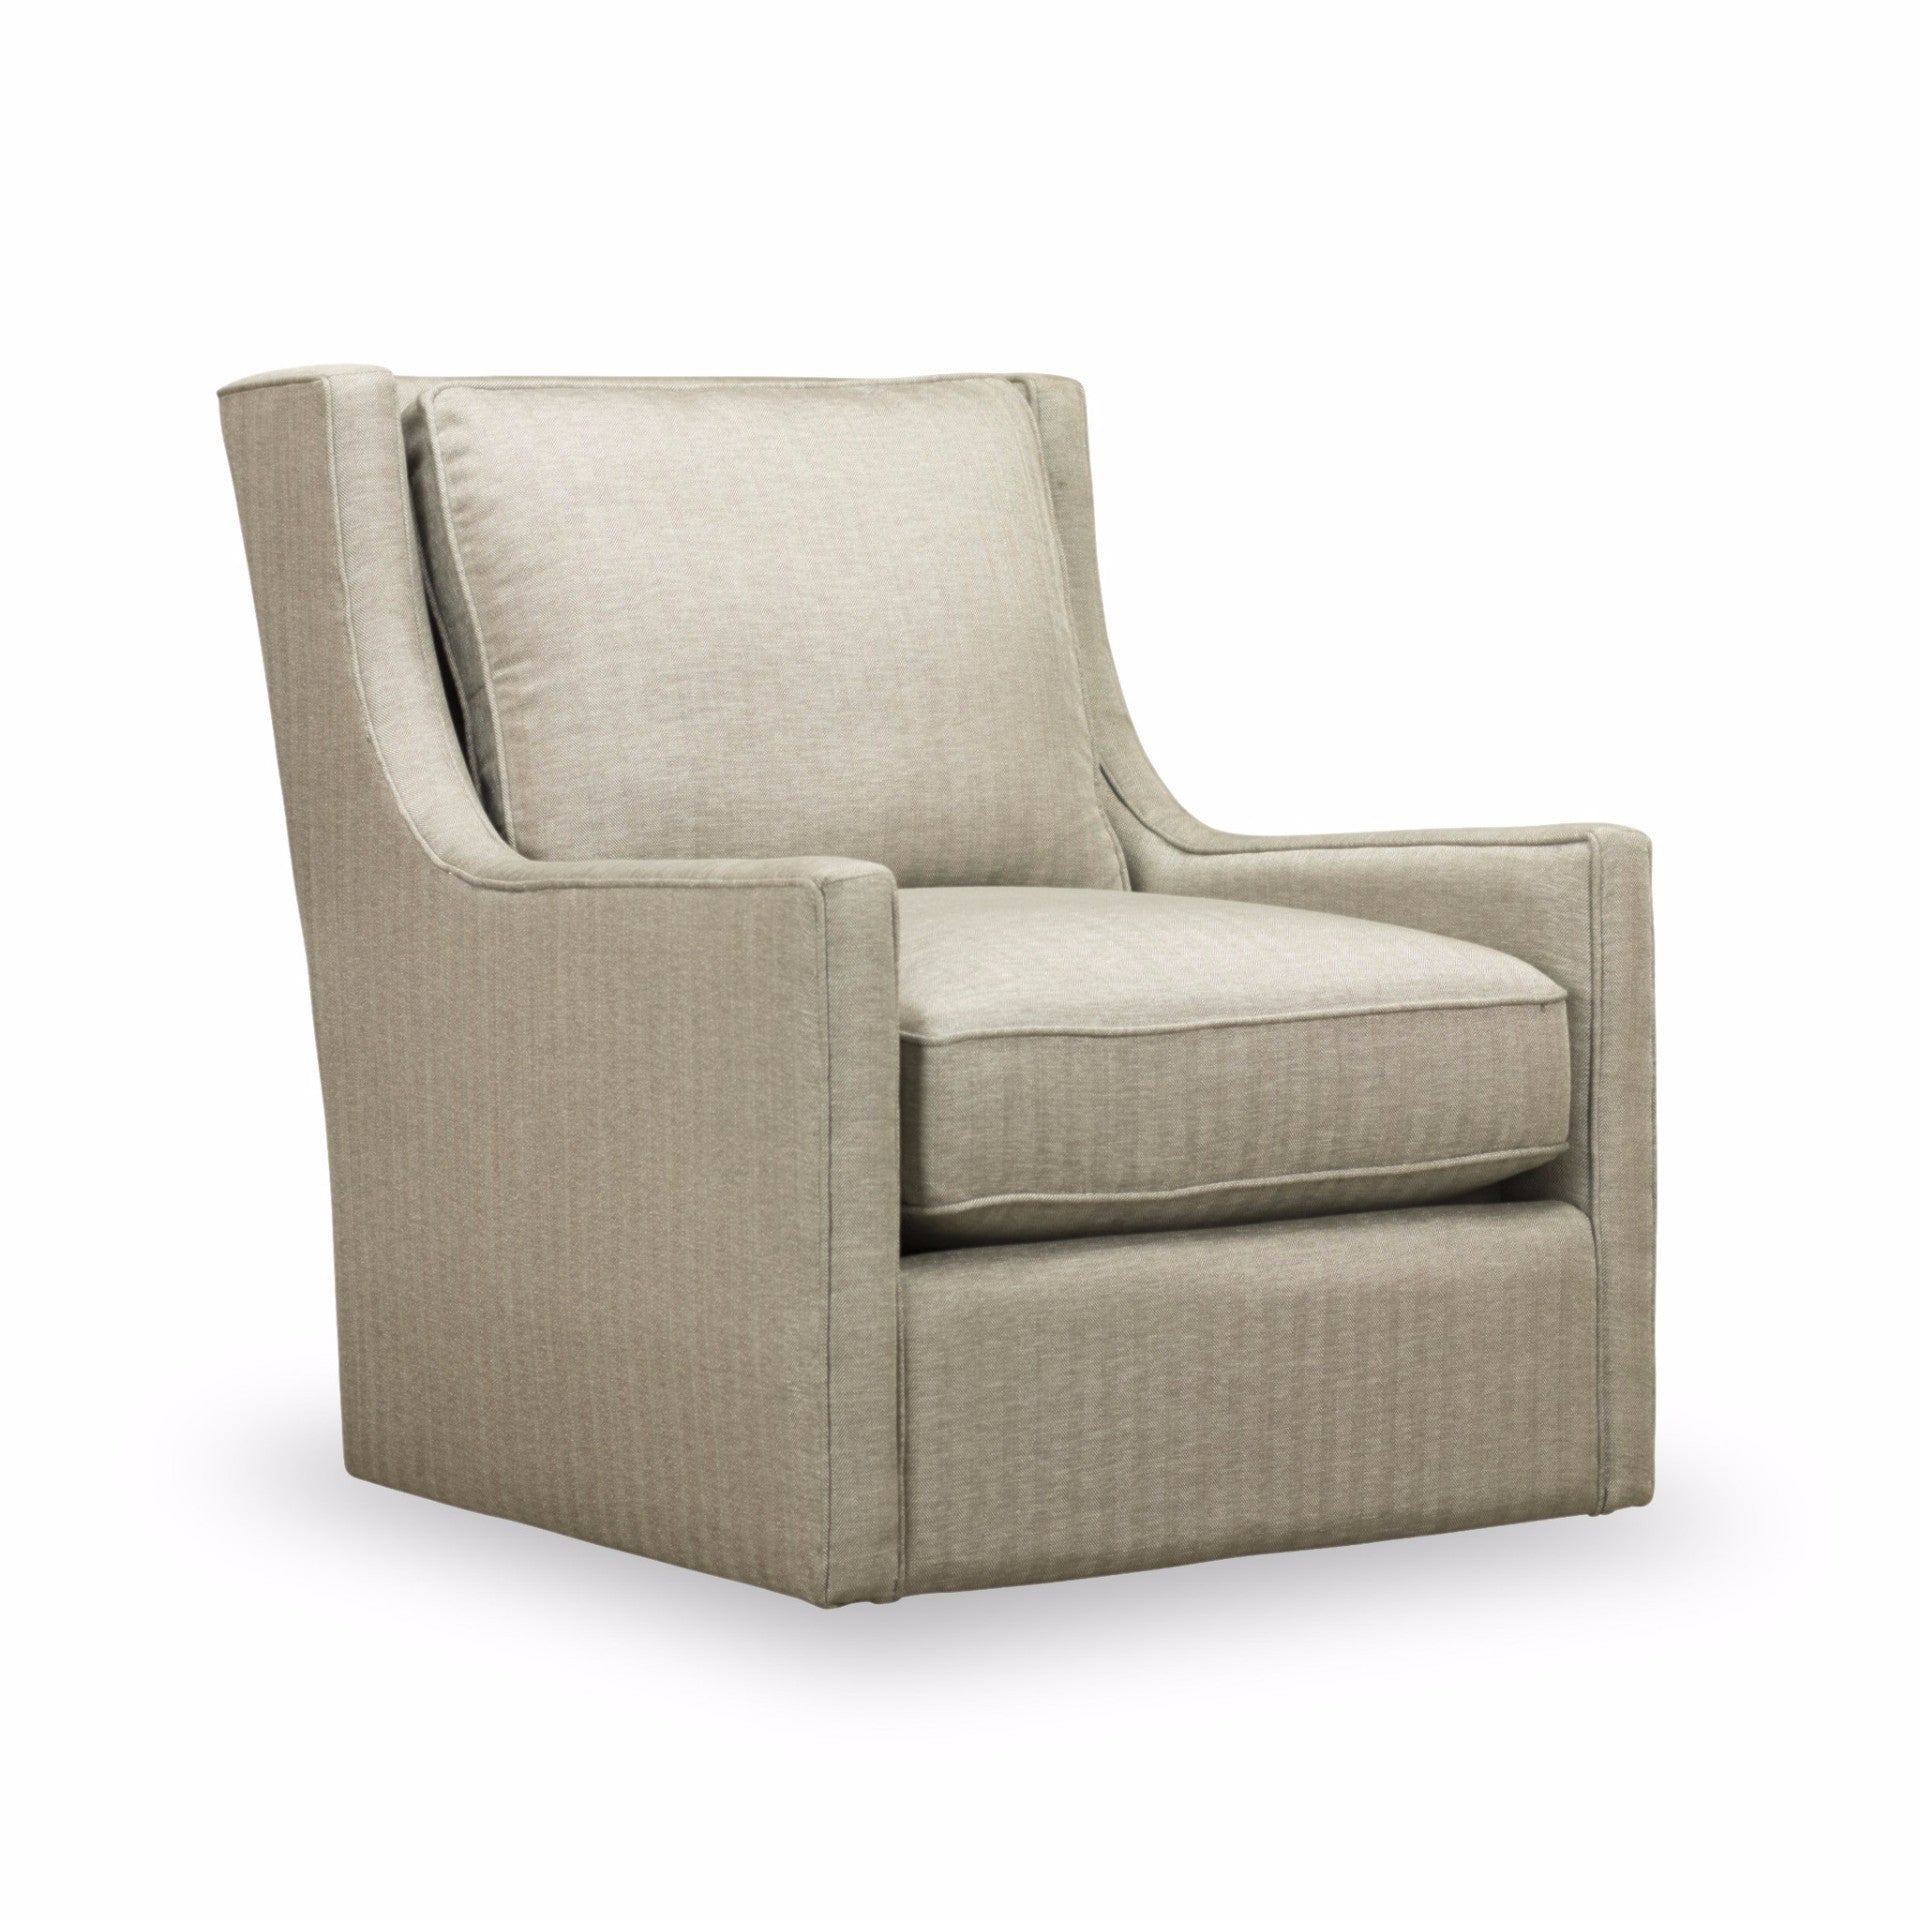 Hugo Swivel Chair - Silver Herringbone